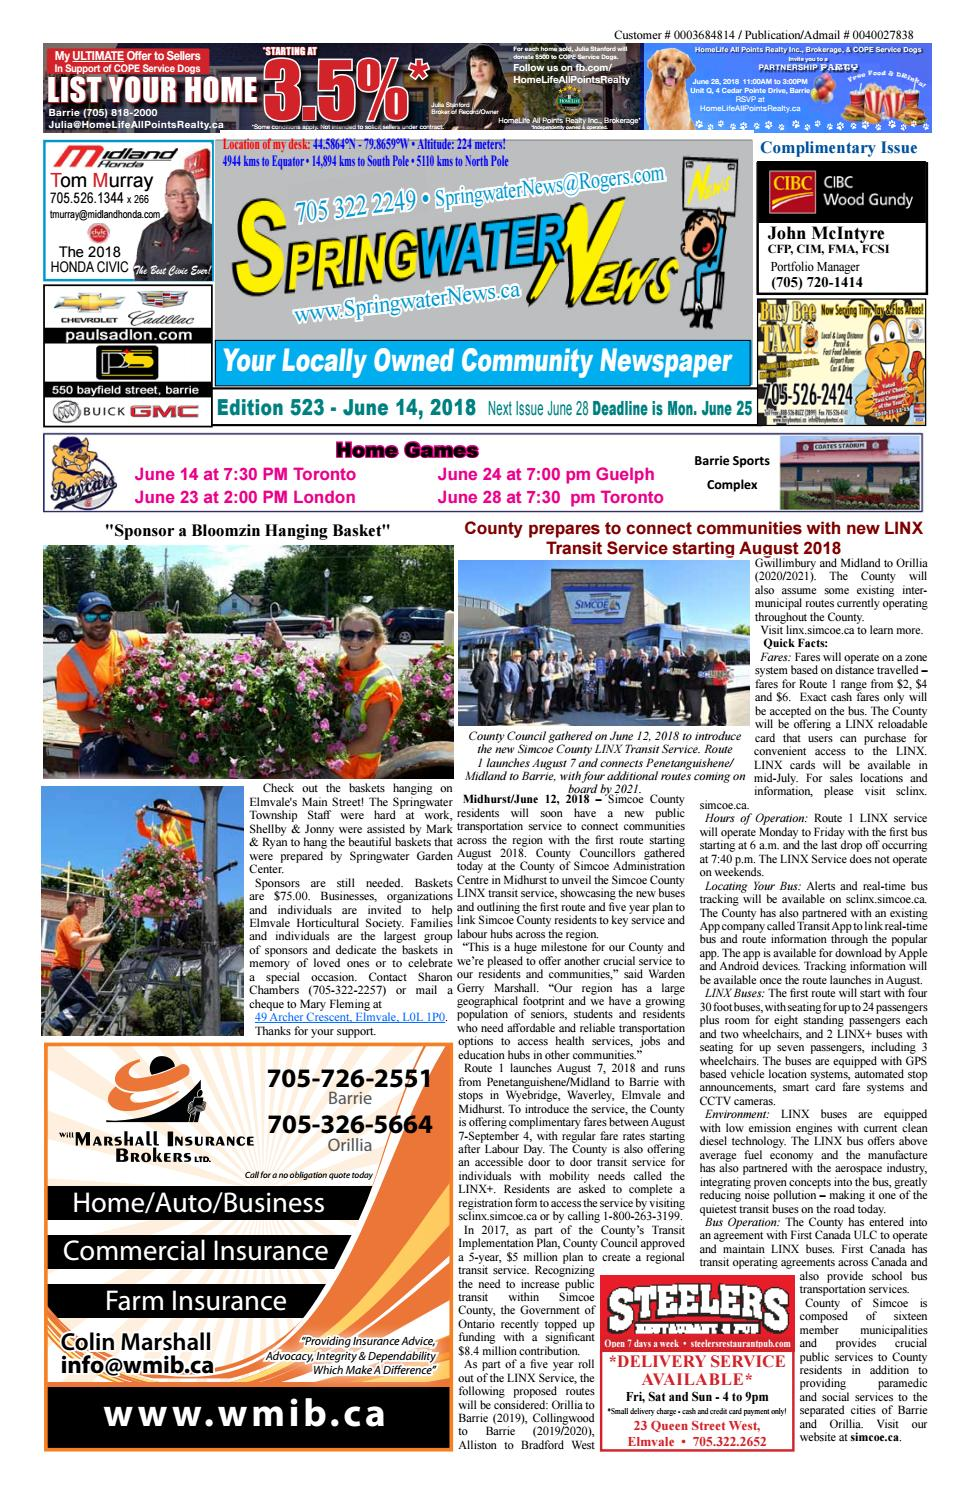 June 14 2018 ed 523 for web by Springwater News - issuu